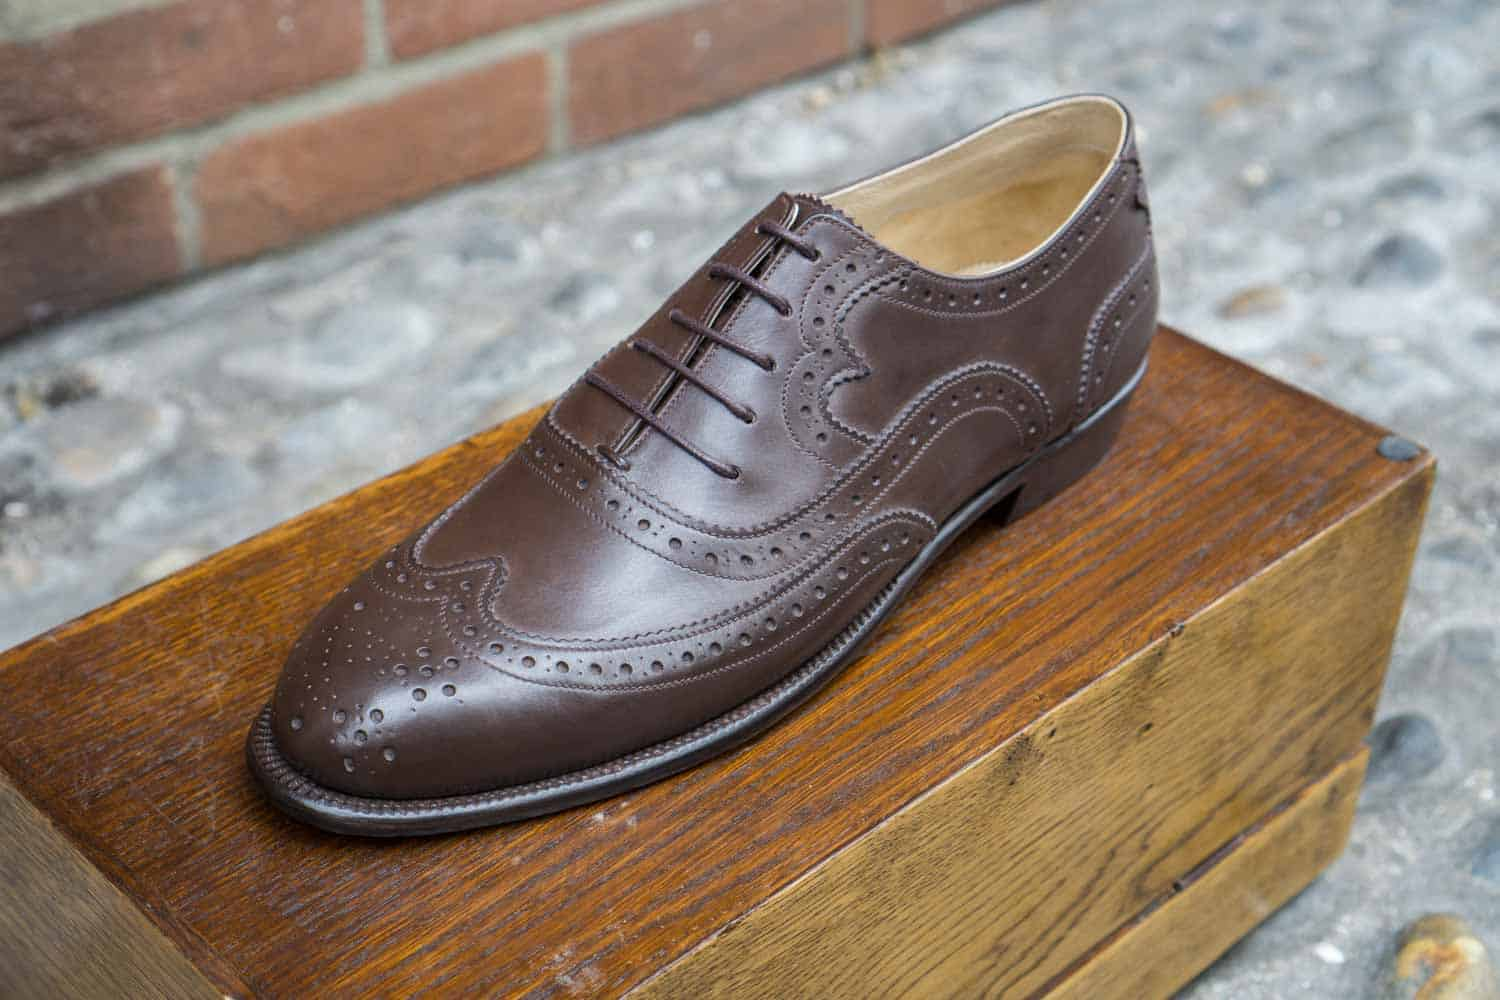 WORLD CHAMPIONSHIPS IN SHOEMAKING 2019 THE COMPETITION SHOES PART 2